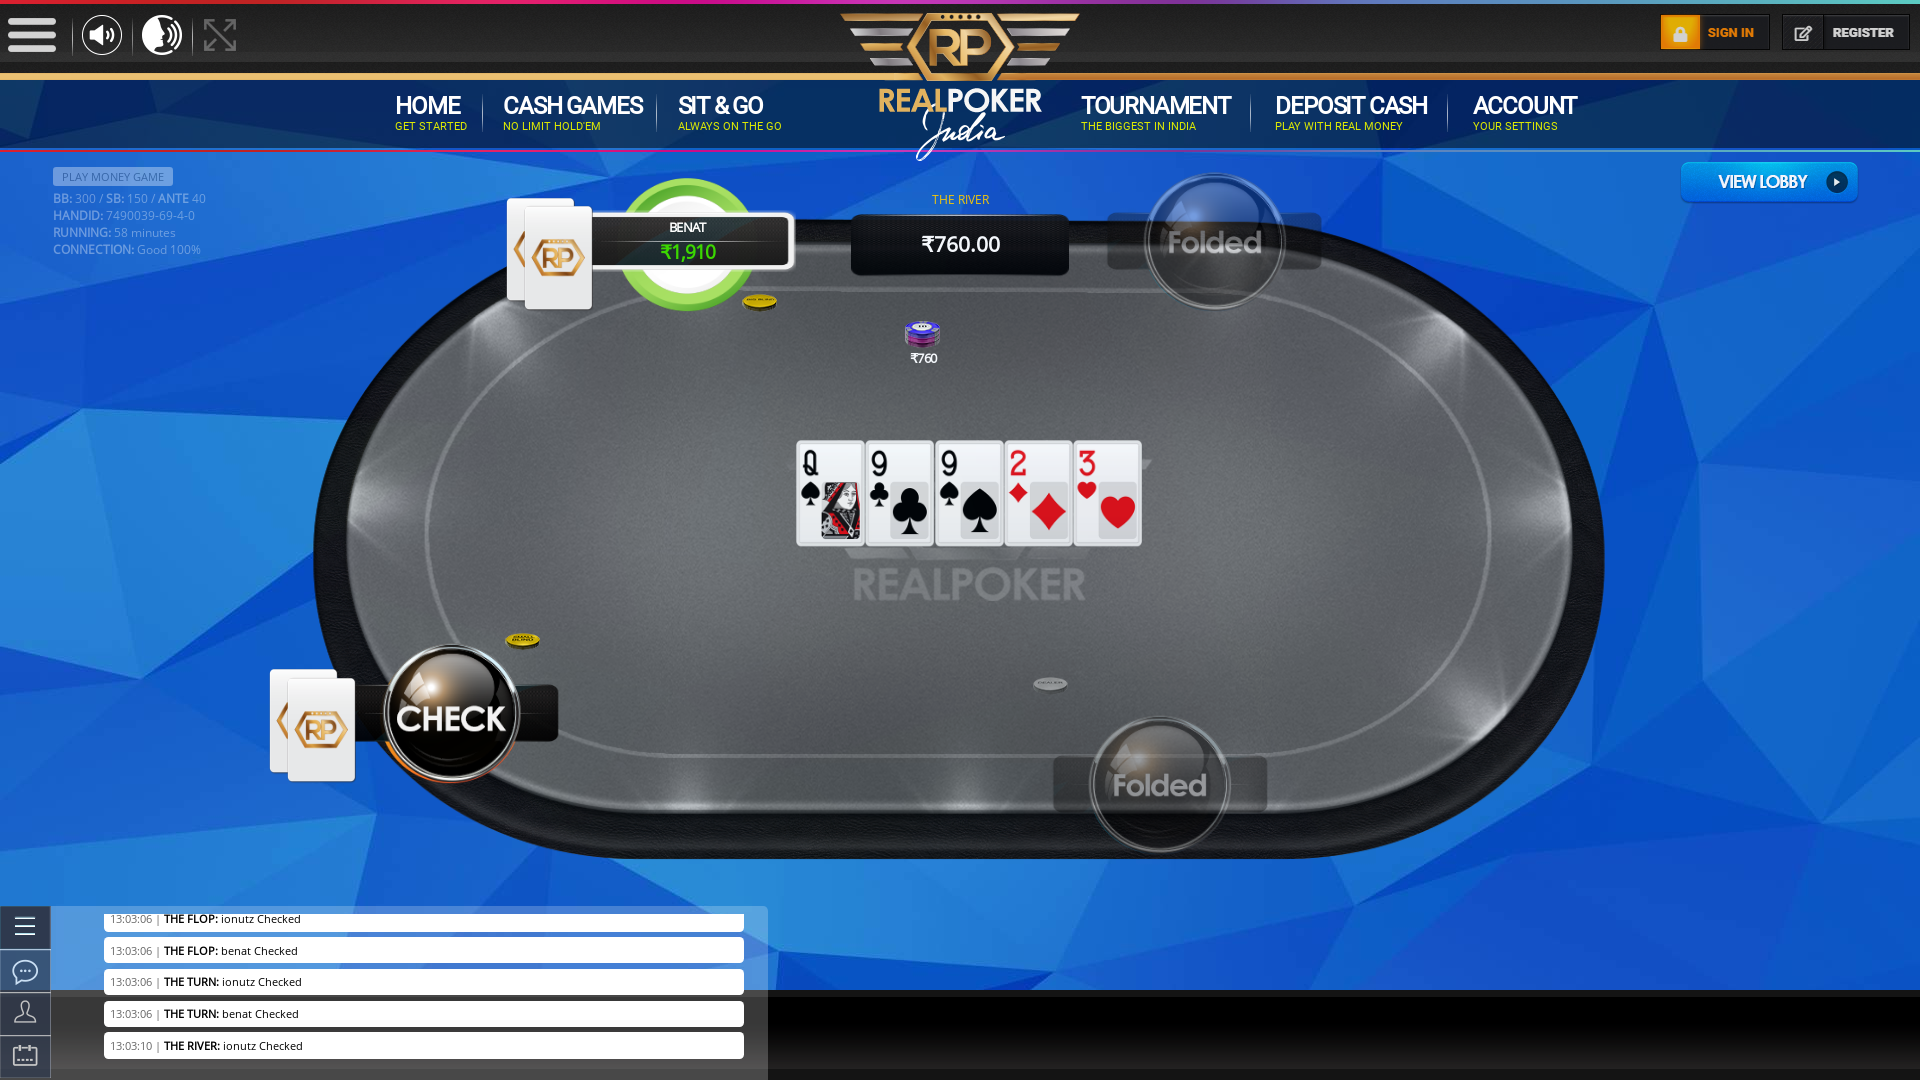 Nandi Hills, Bangalore online poker game on a 10 player table in the 58th minute of the meeting